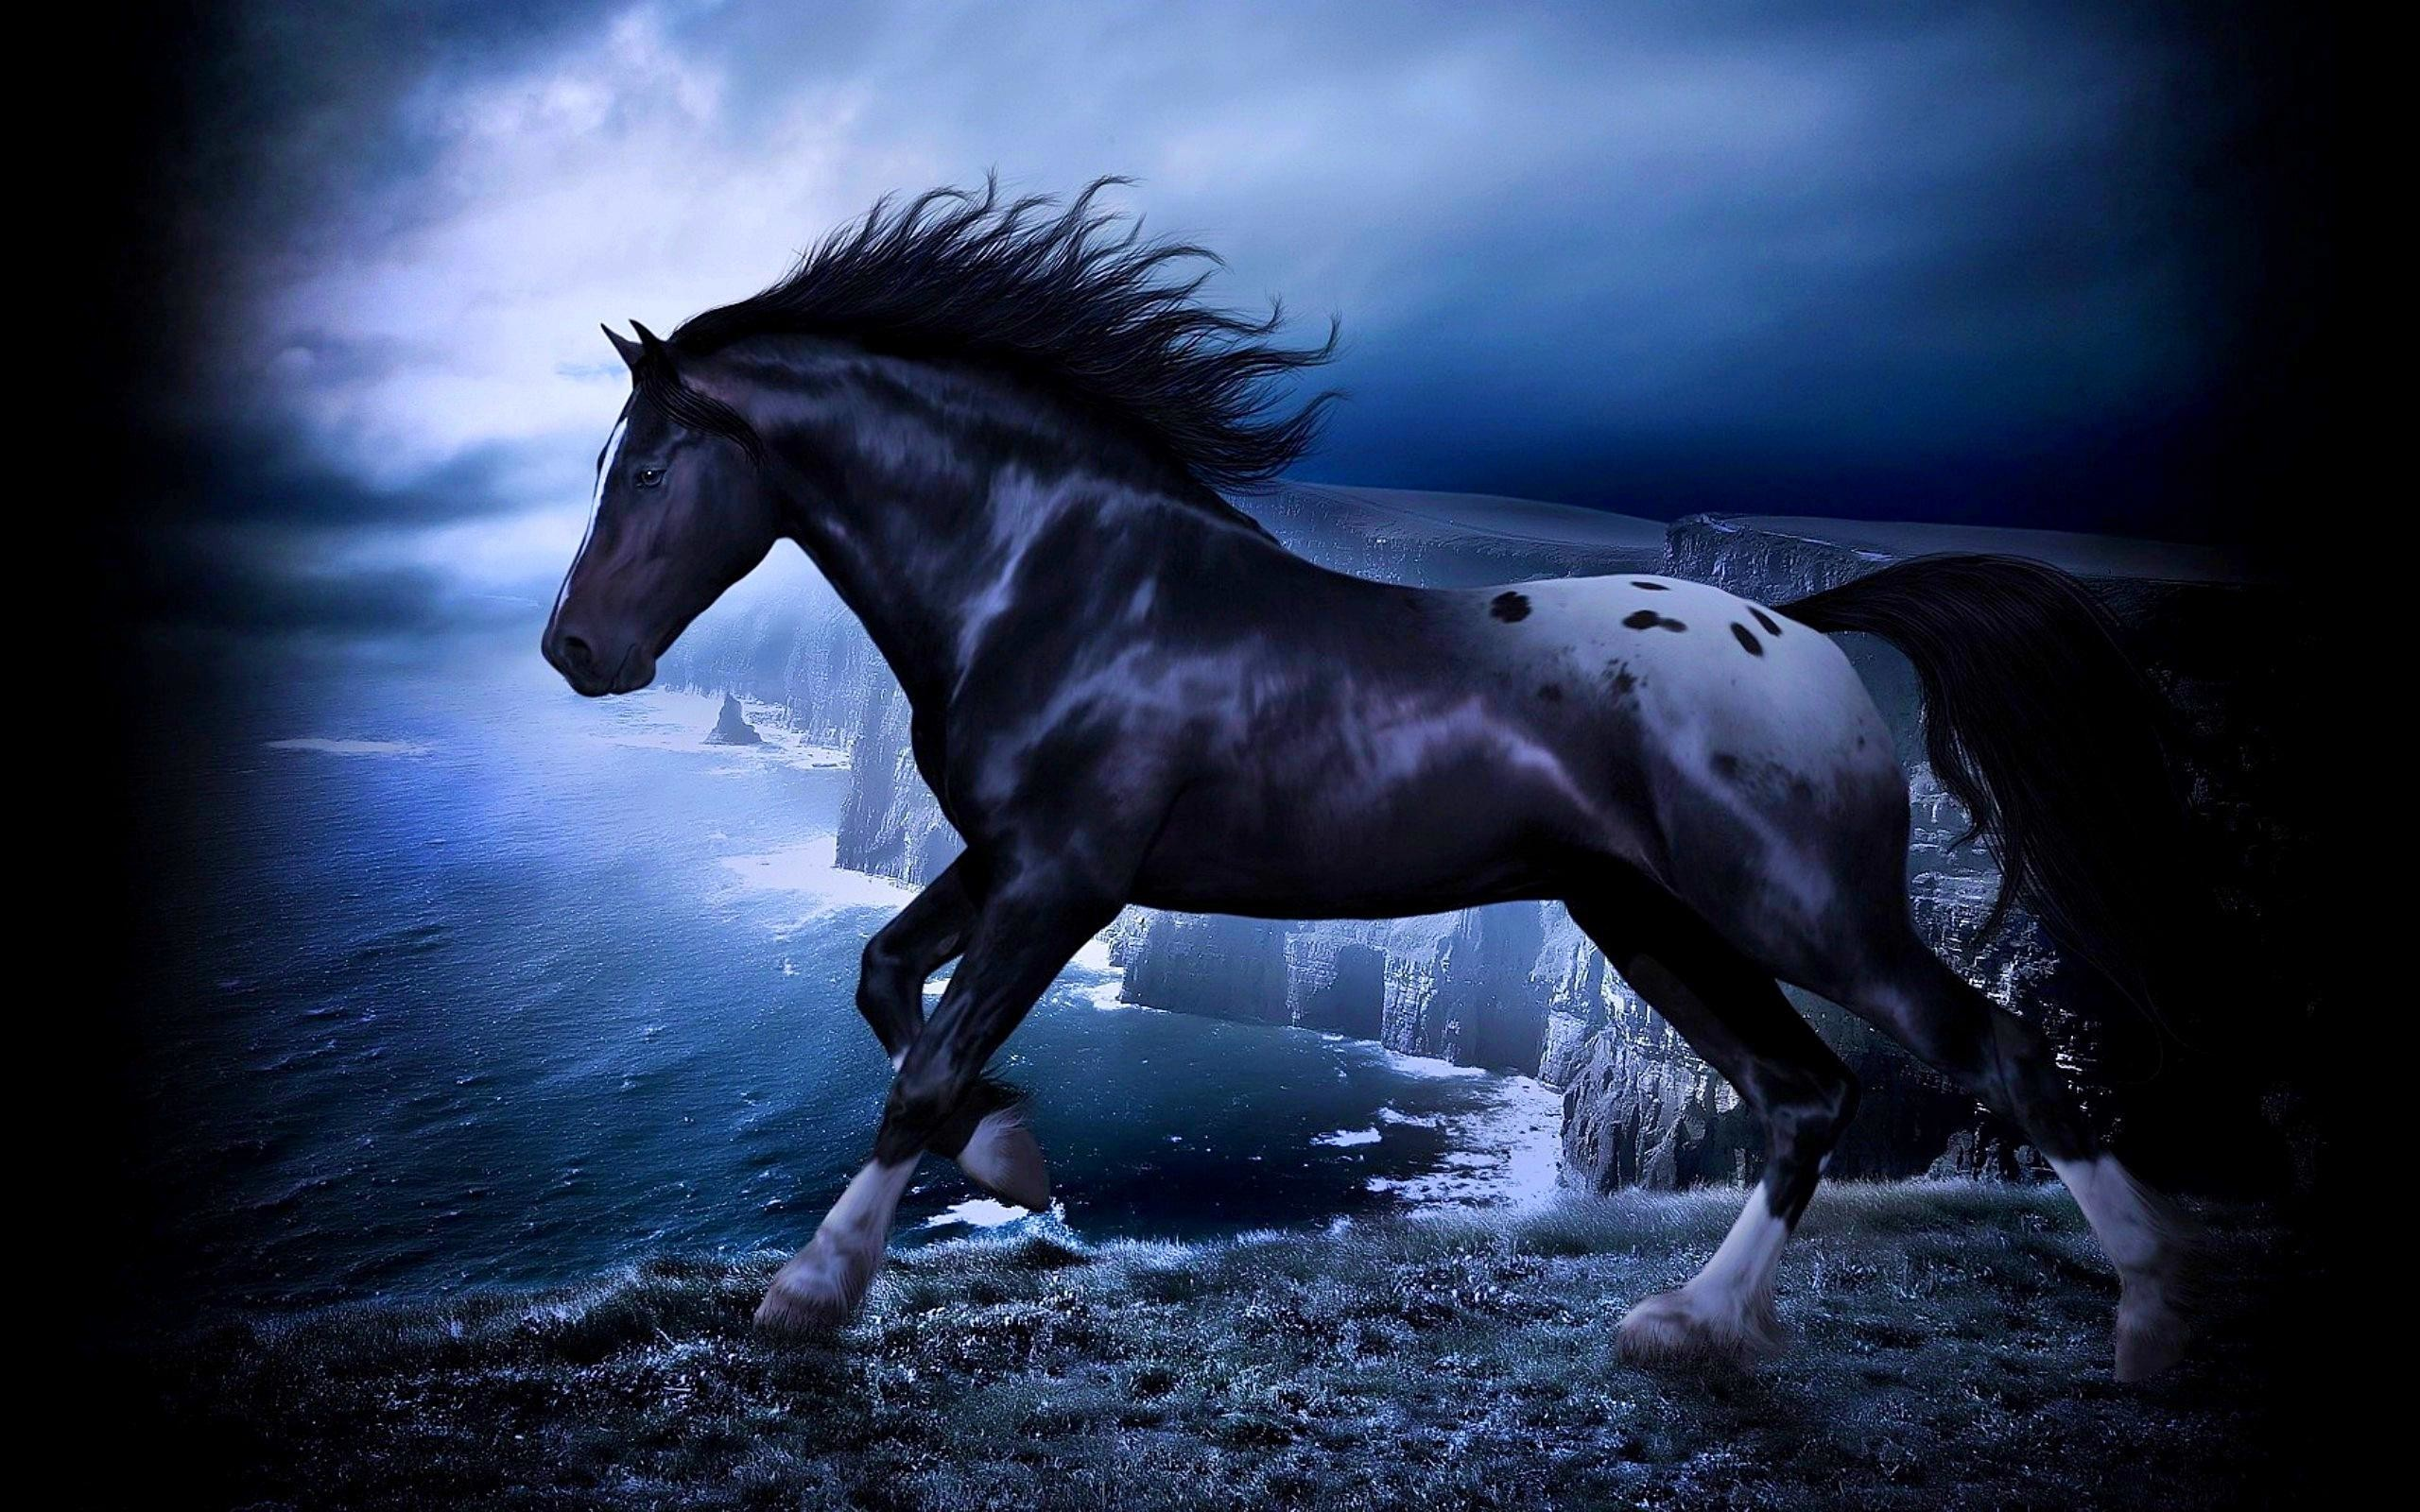 Download Fantasy Horse In The Dark Wallpaper Apps Black And Blue Horse 1920x1080 Download Hd Wallpaper Wallpapertip